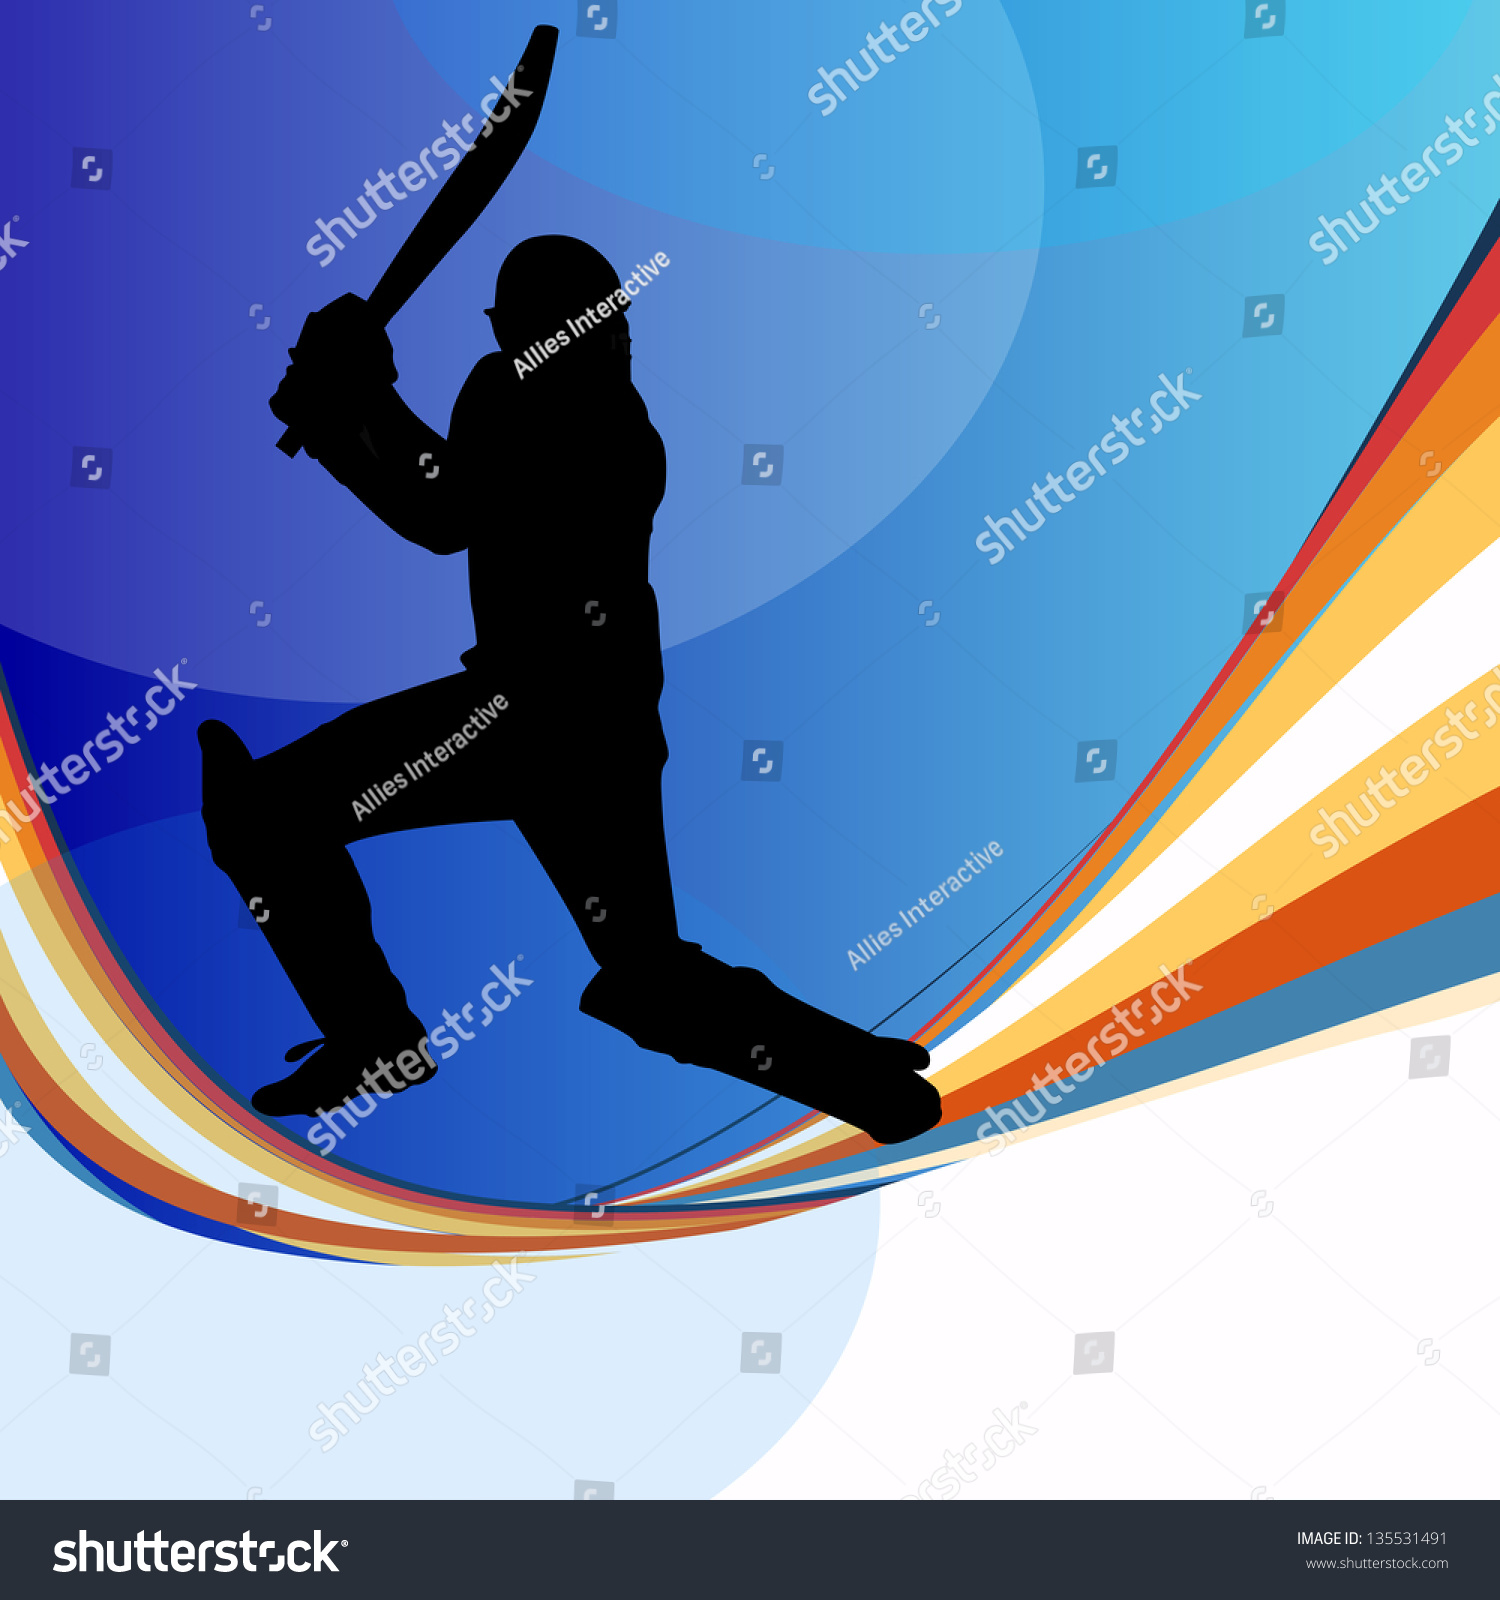 Cricket Batsman In Playing Action On Colorful Waves